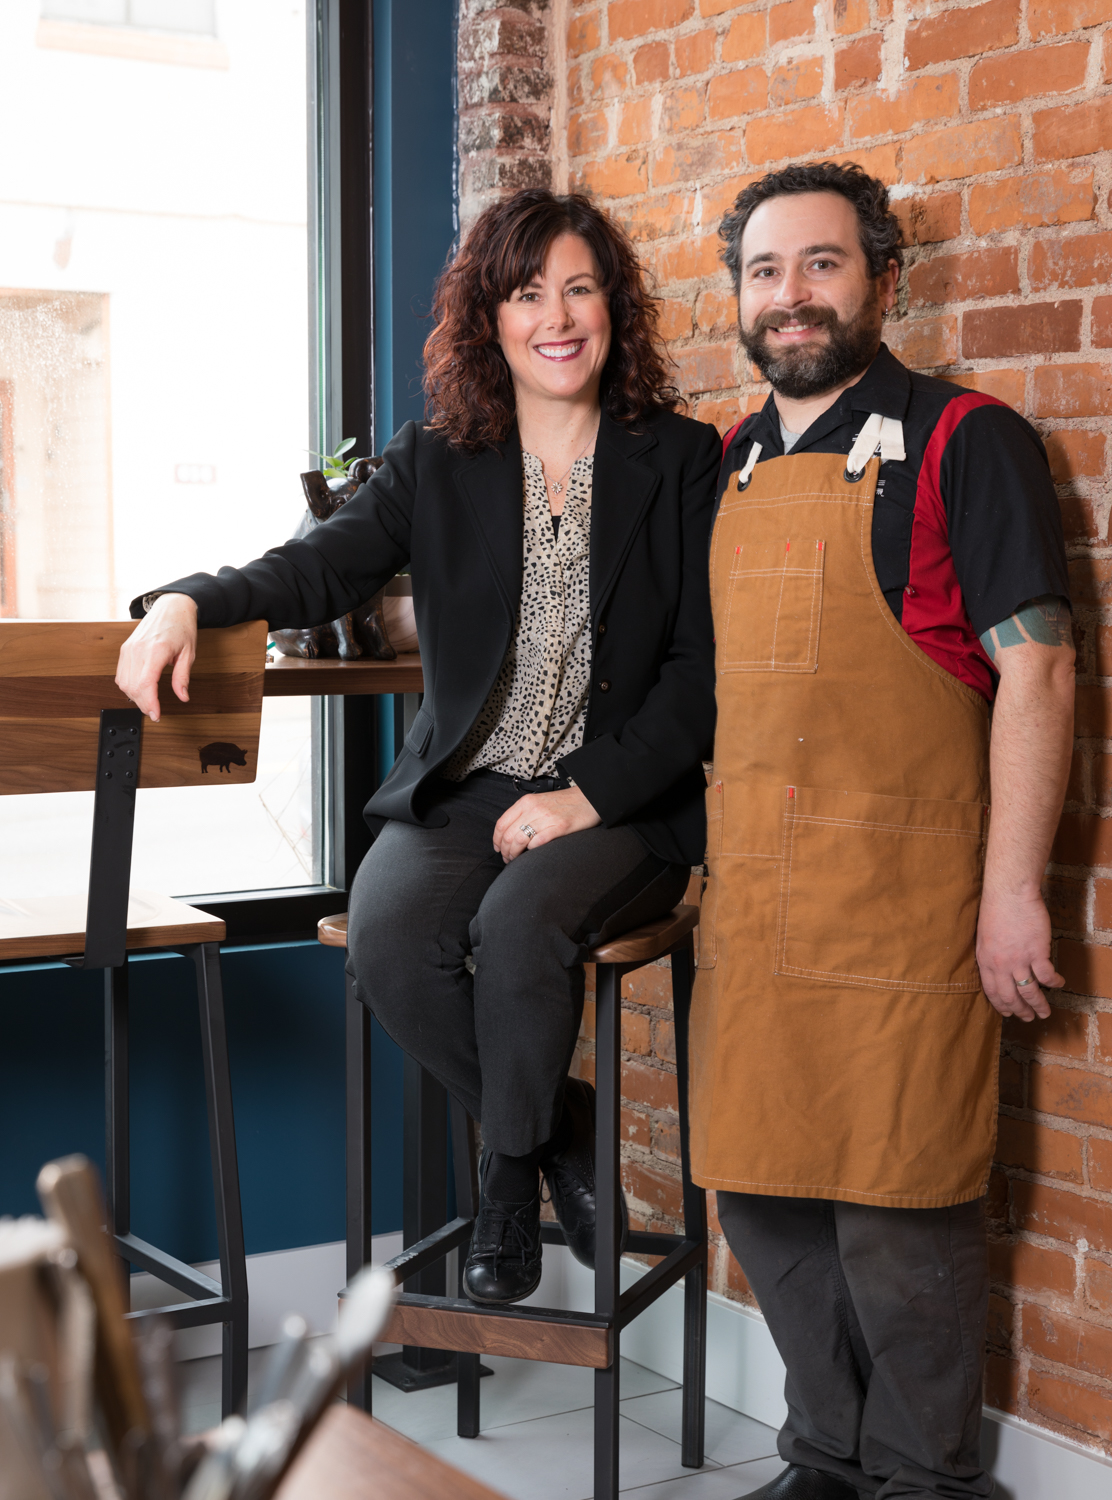 Husband and wife team, manager Elisabeth (Libby) & Chef Gary Leybman / Image: Marlene Rounds // Published: 3.12.19